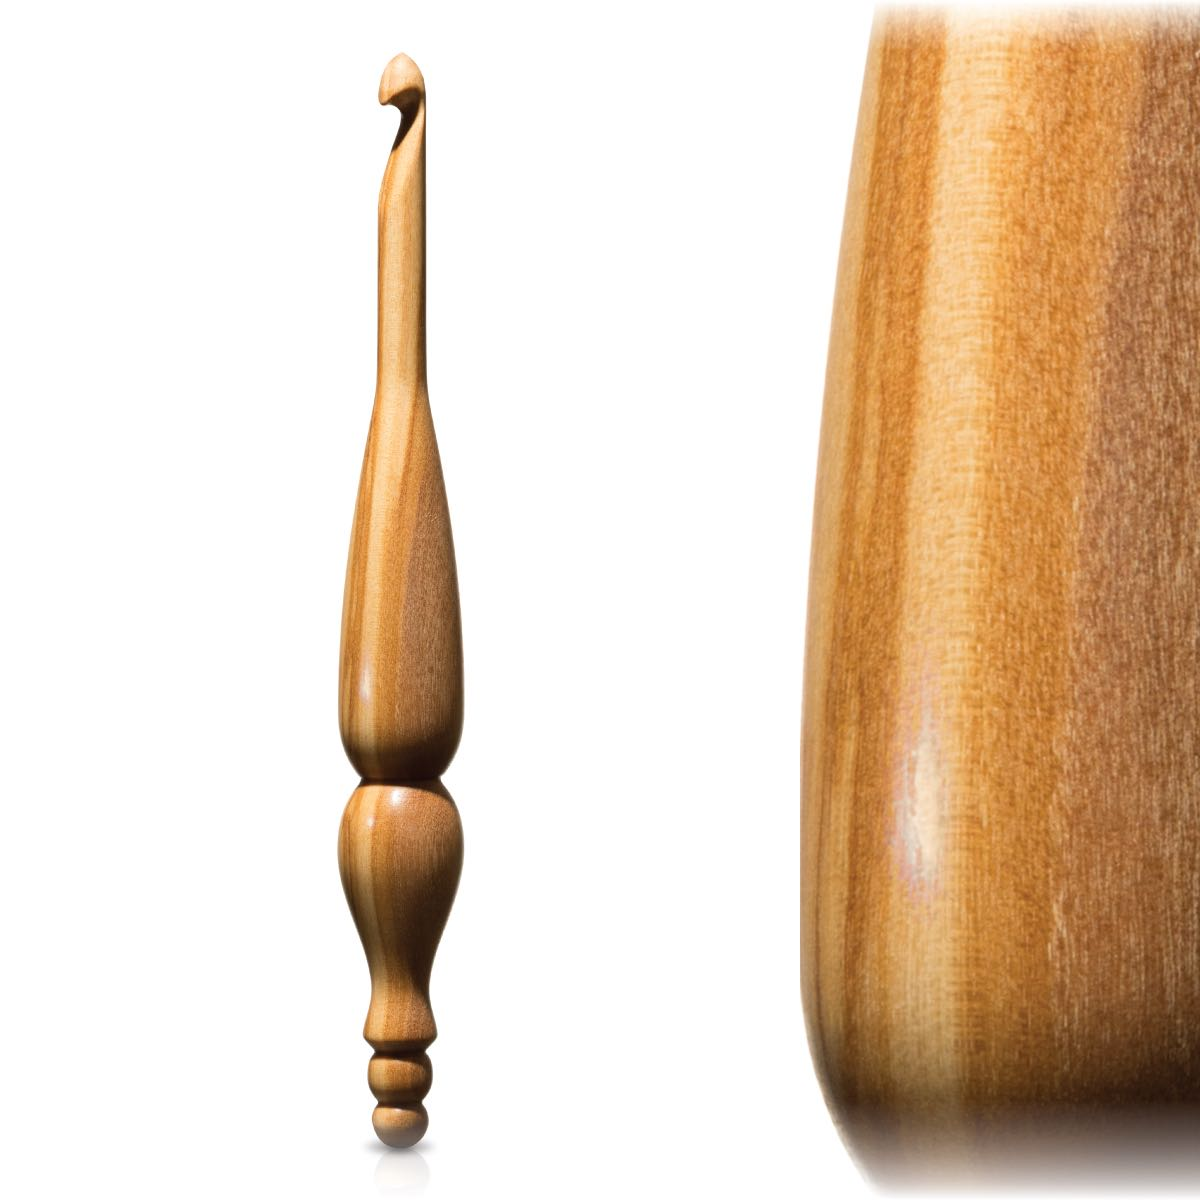 Handmade crochet hook in bright Olivewood